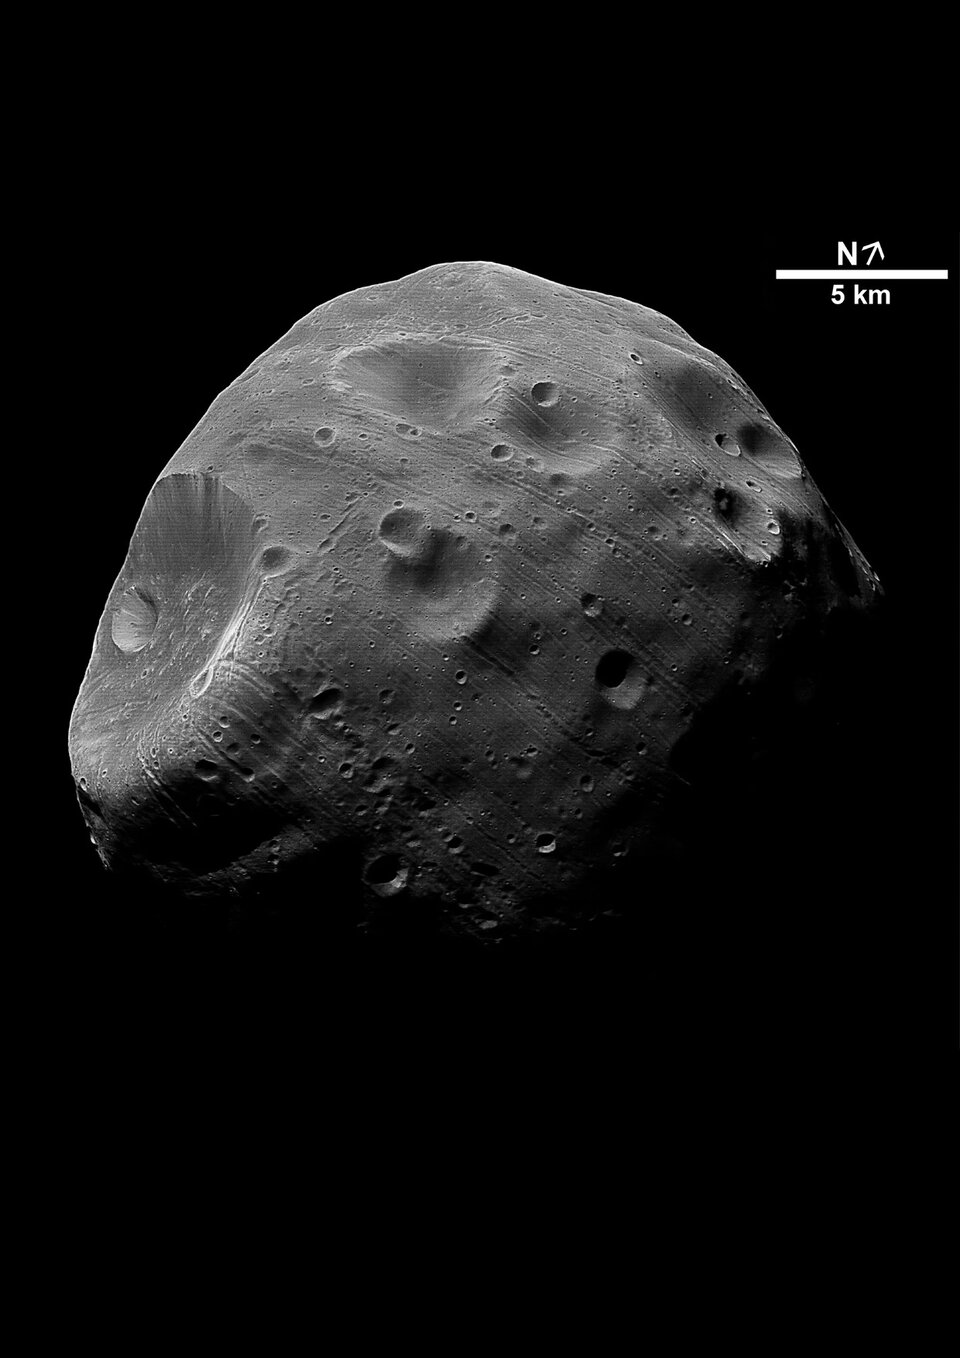 Phobos in black and white, close-up